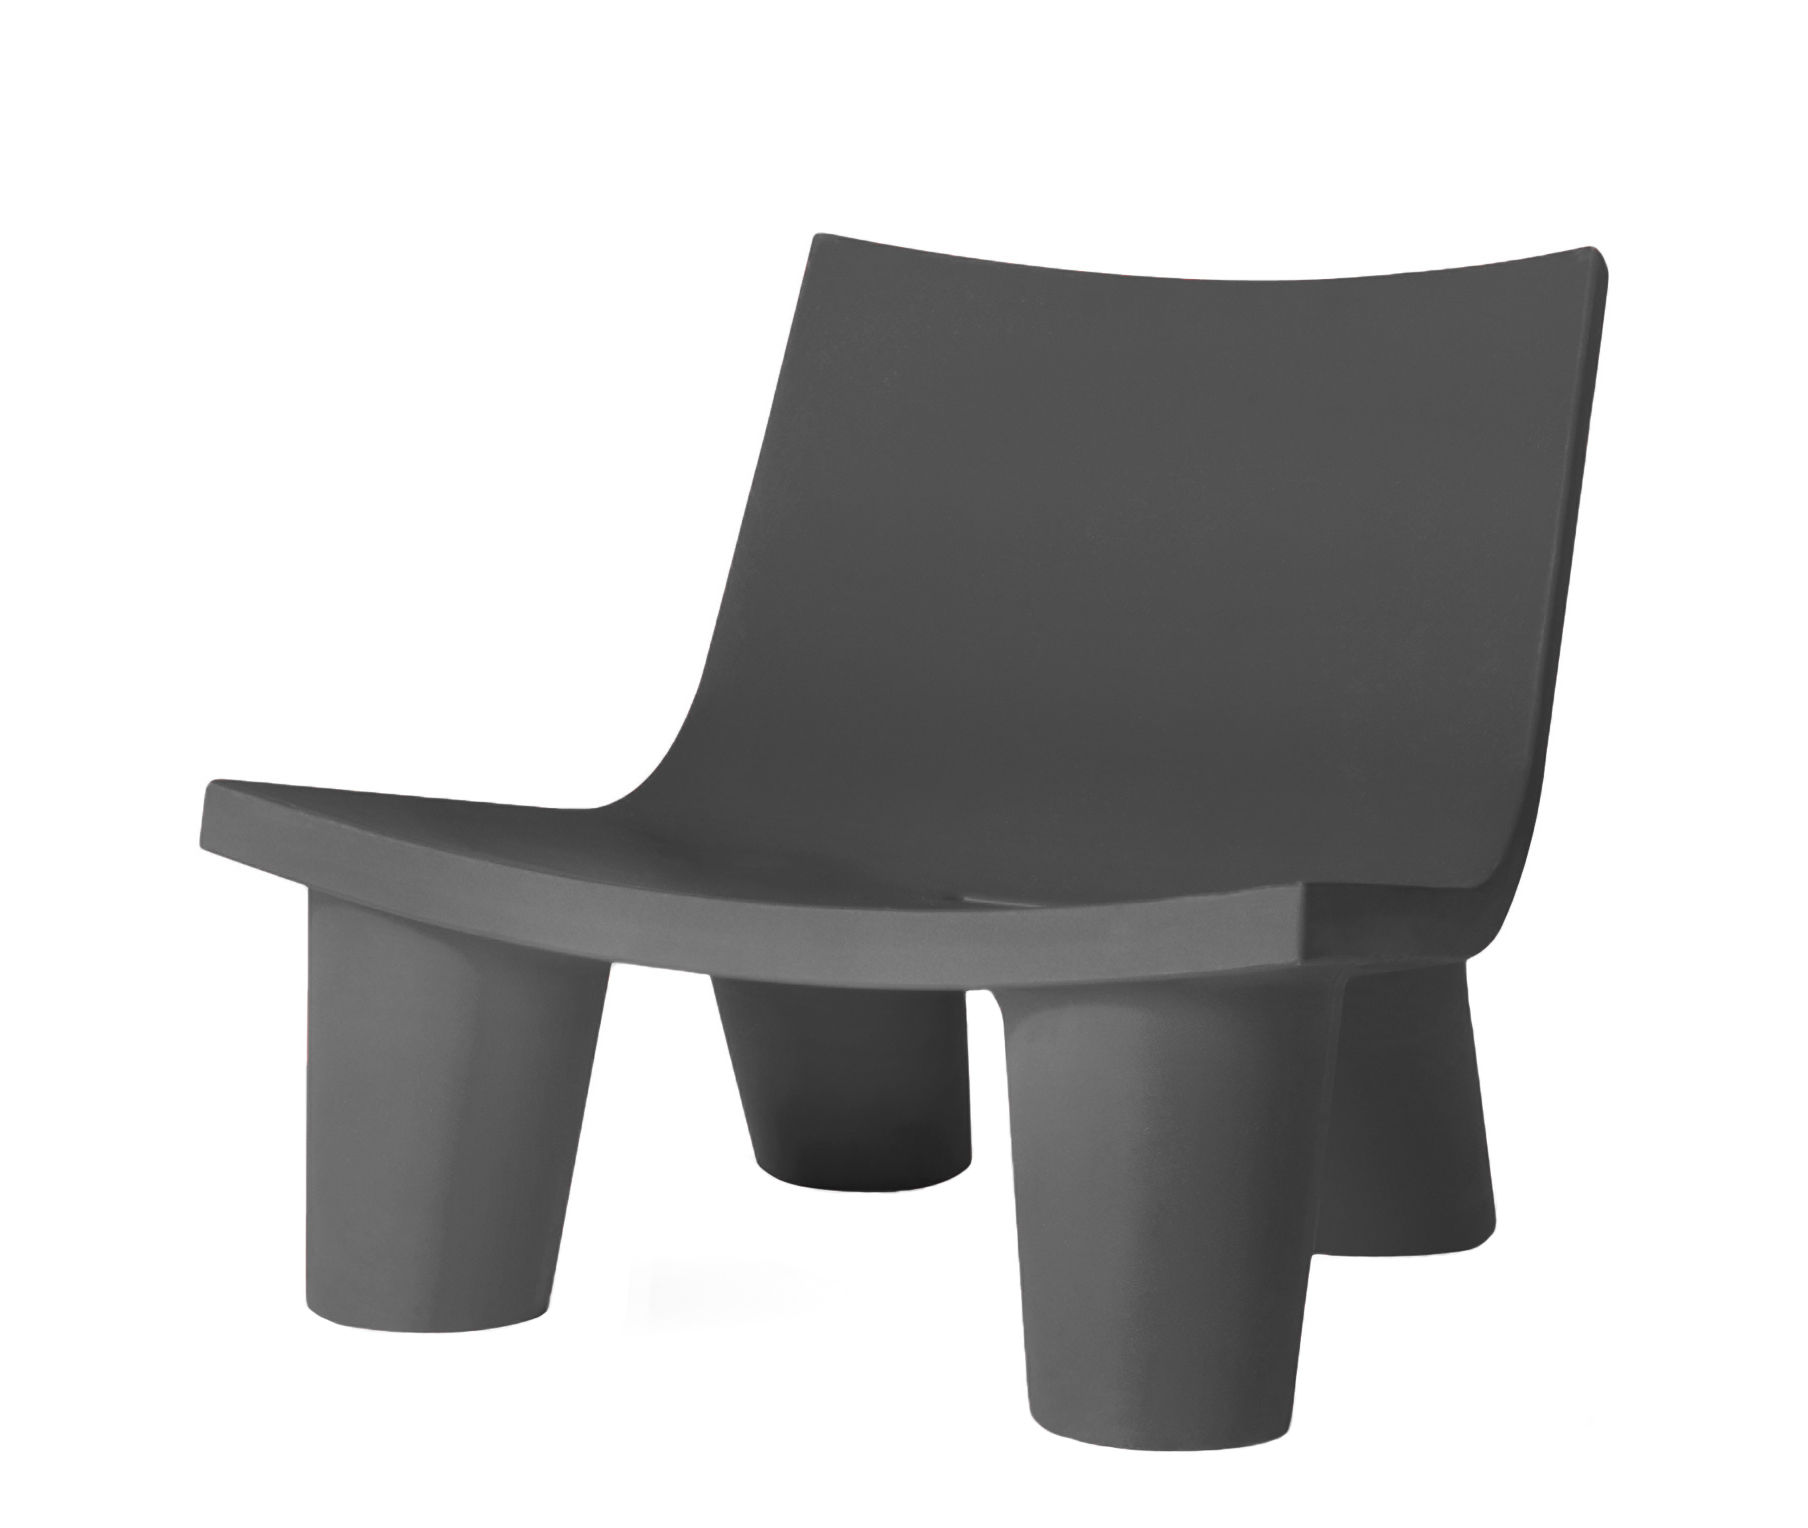 Furniture - Armchairs - Low Lita Low armchair by Slide - Grey - roto-moulded polyhene